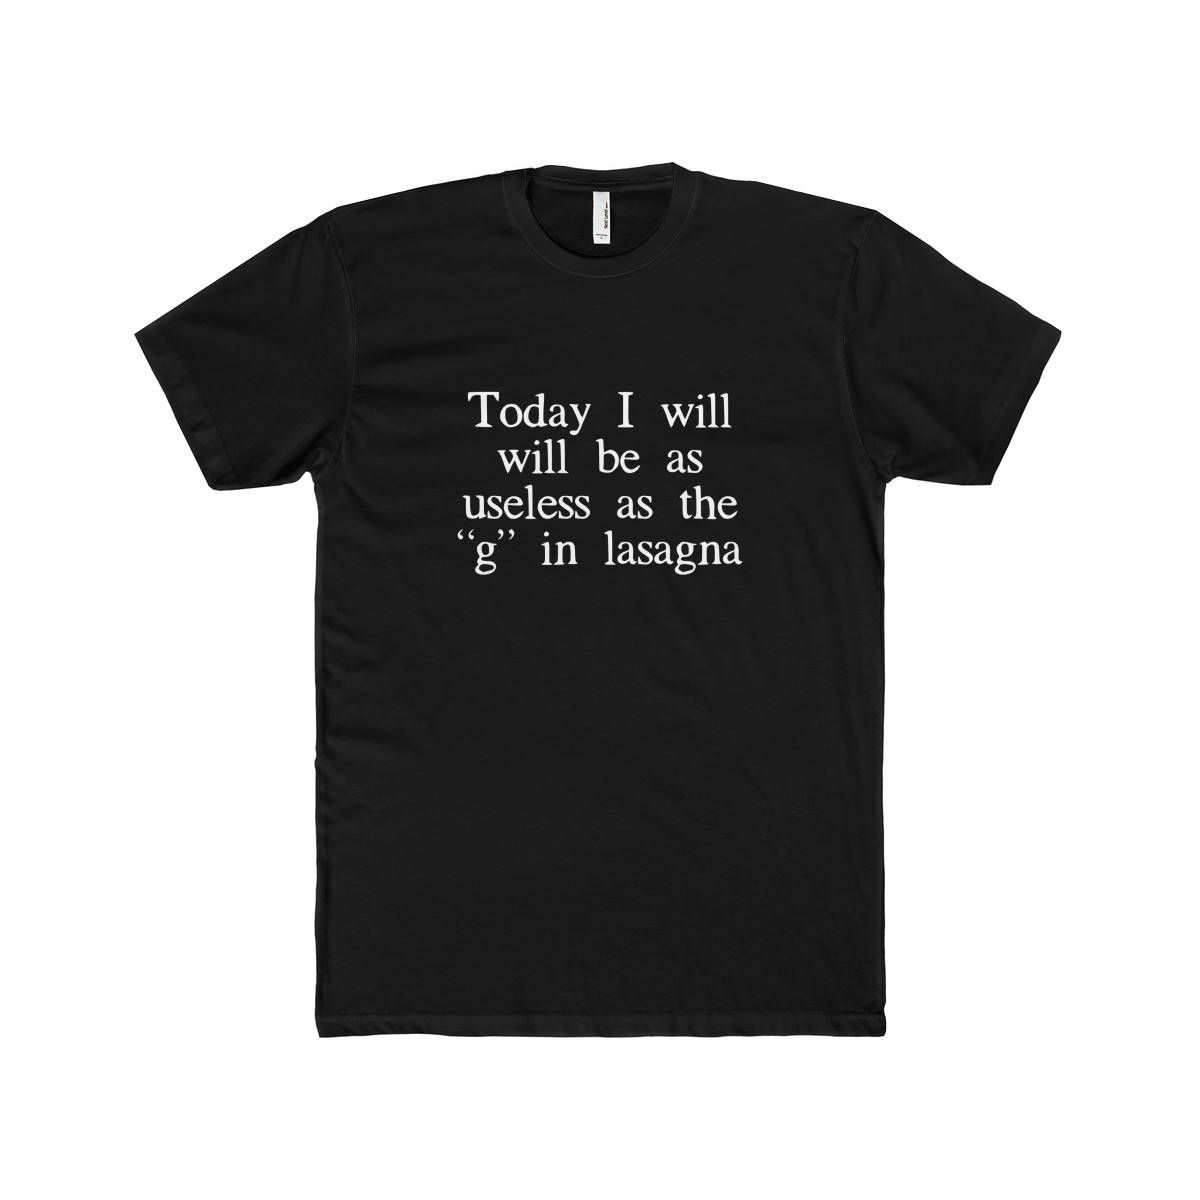 Today I Will Be Useless Sarcastic Shirt Witty T Gifts Under 25 Birthday Gift For Dad Sister Him Her Rude Funny